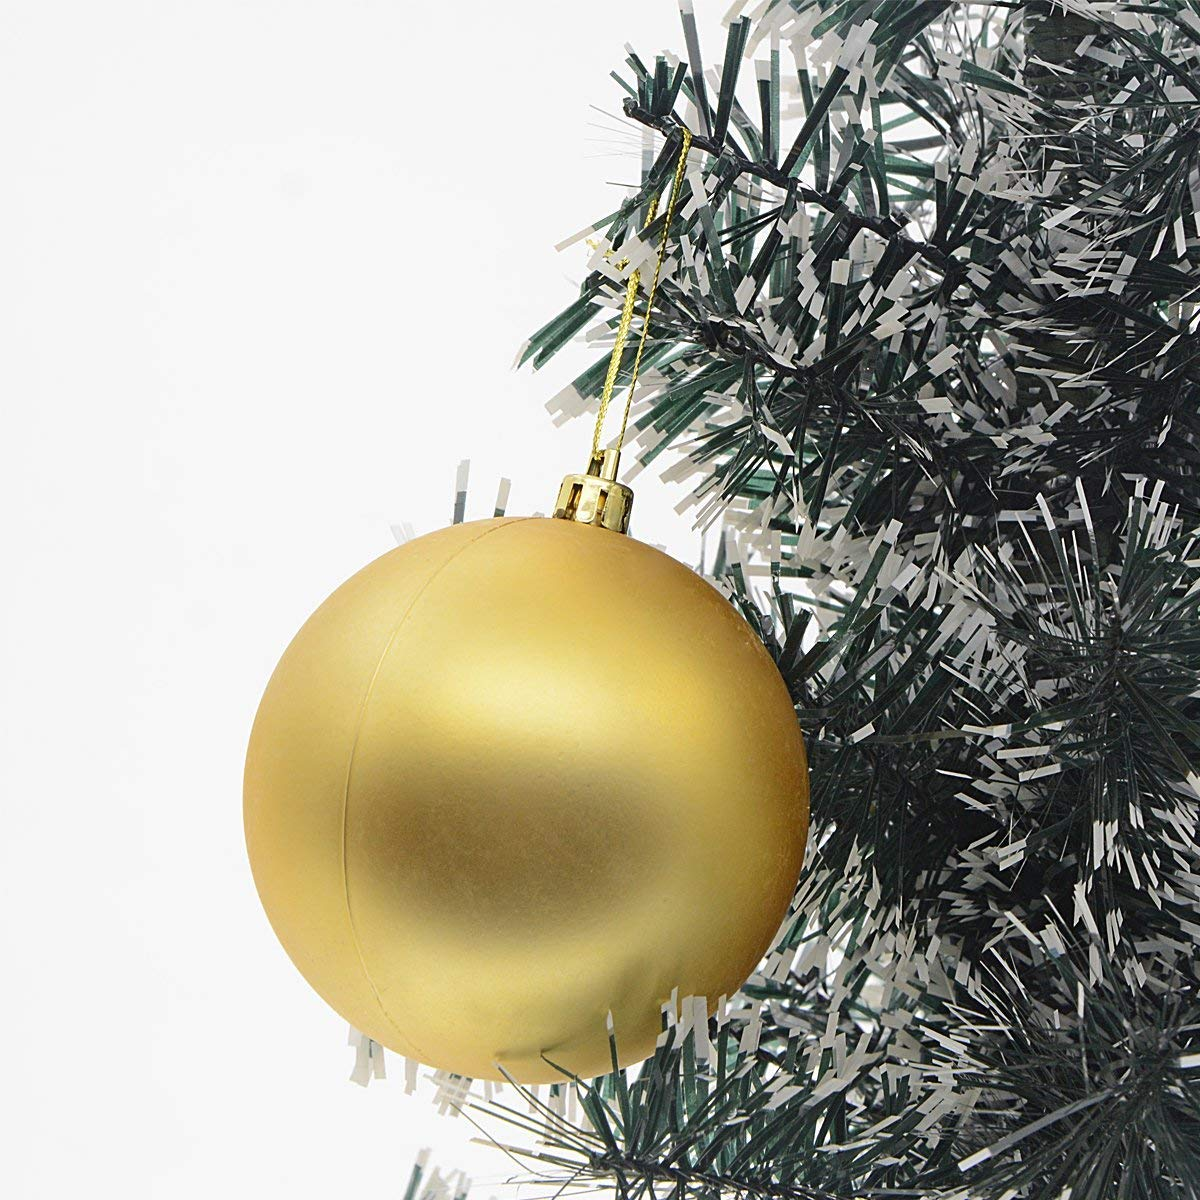 Green/&Gold/&Red Saim Shatterproof Christmas Decoration Balls Wedding Holiday Parties Xmas Trees Decorative Hanging Ornaments 3cm 36Pcs